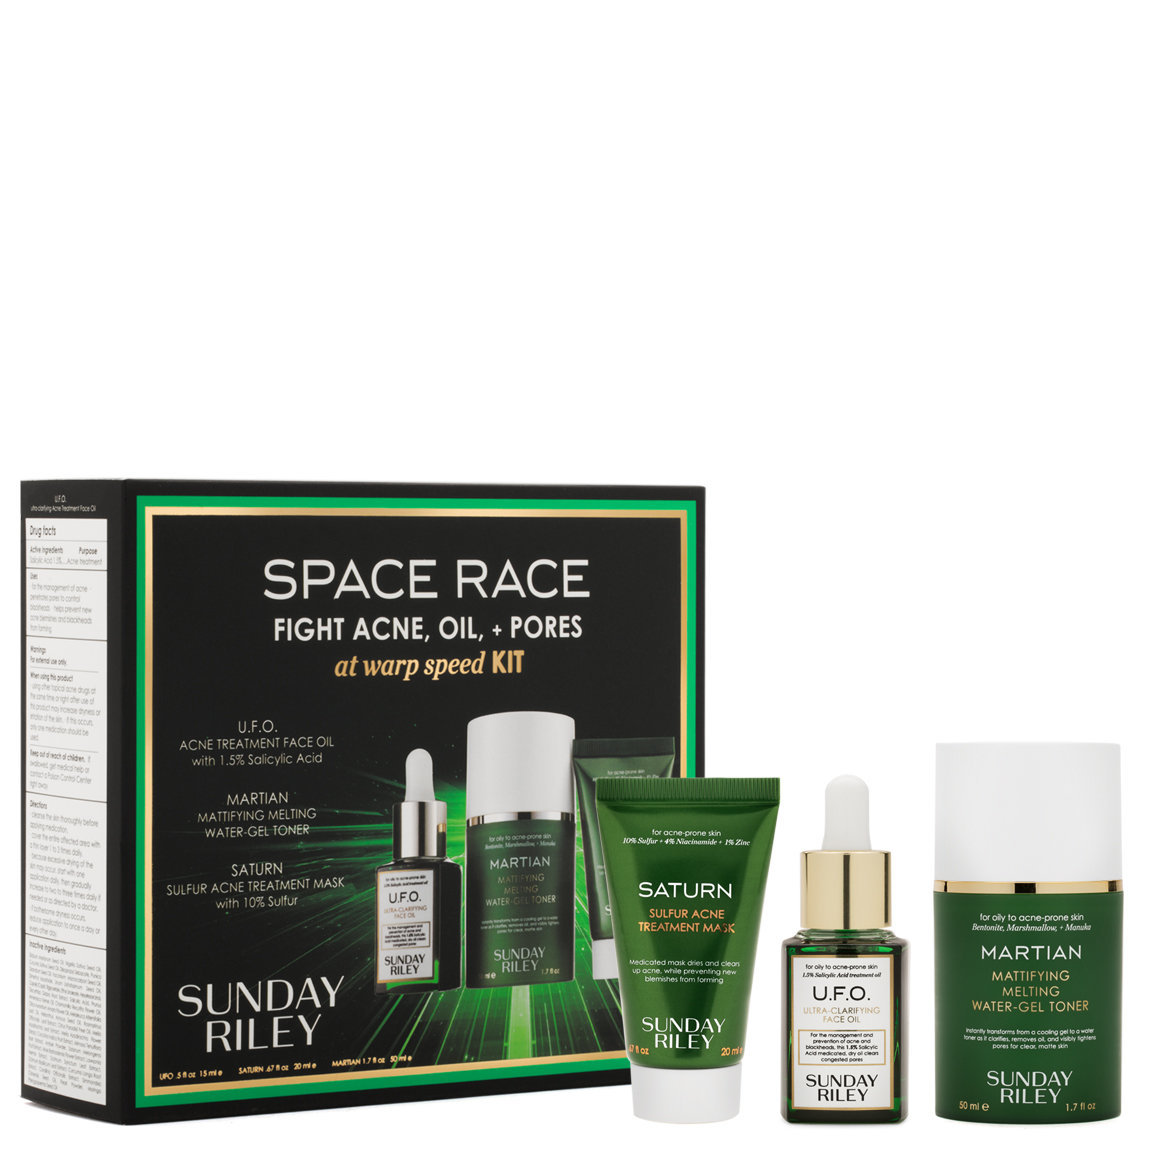 Sunday Riley Space Race Fight Acne, Oil + Pores At Warp Speed Kit product smear.